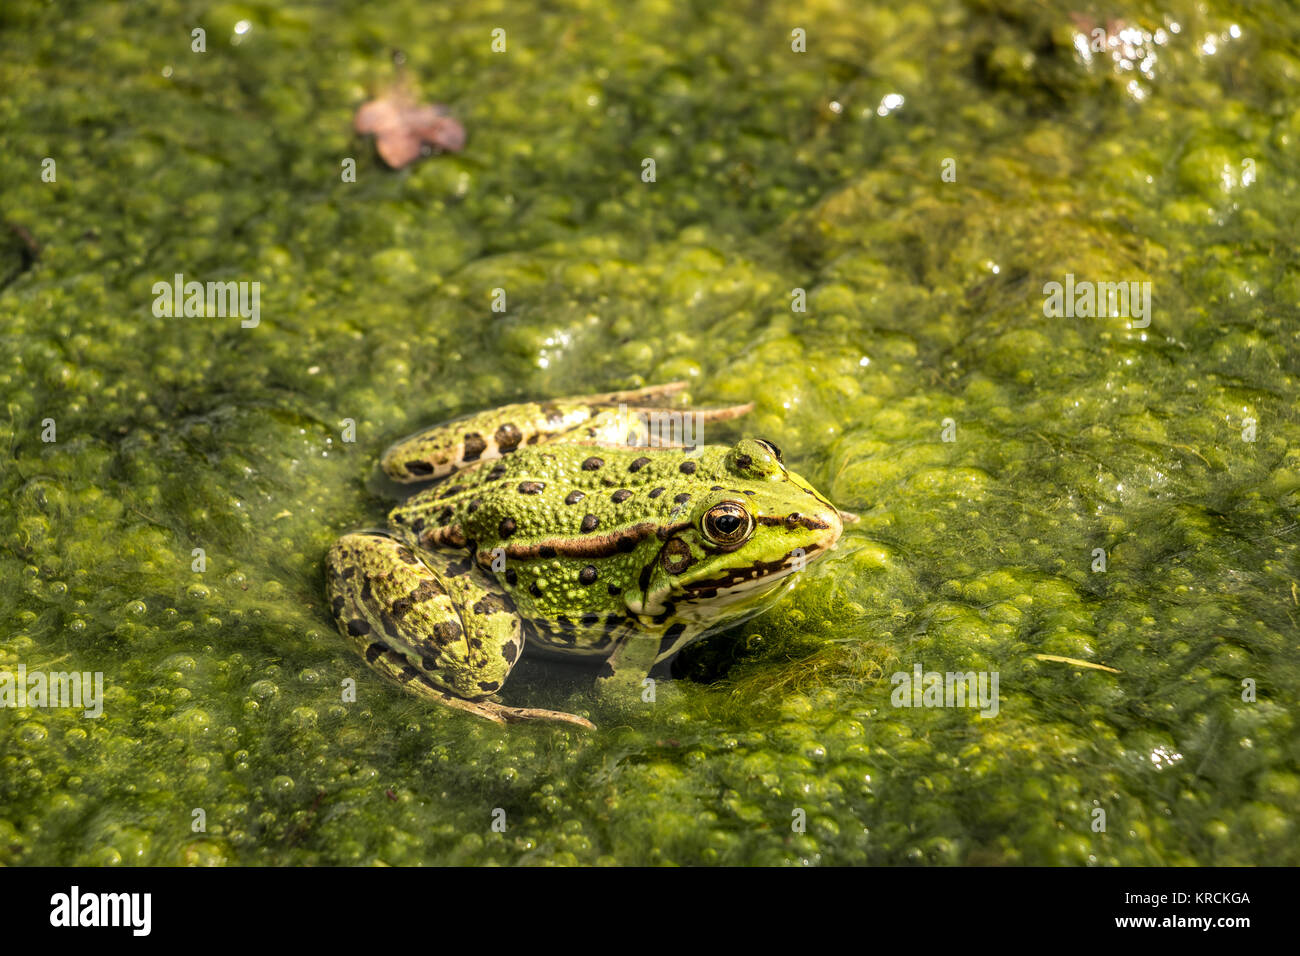 Green frog in the water full of frogspawn - Stock Image